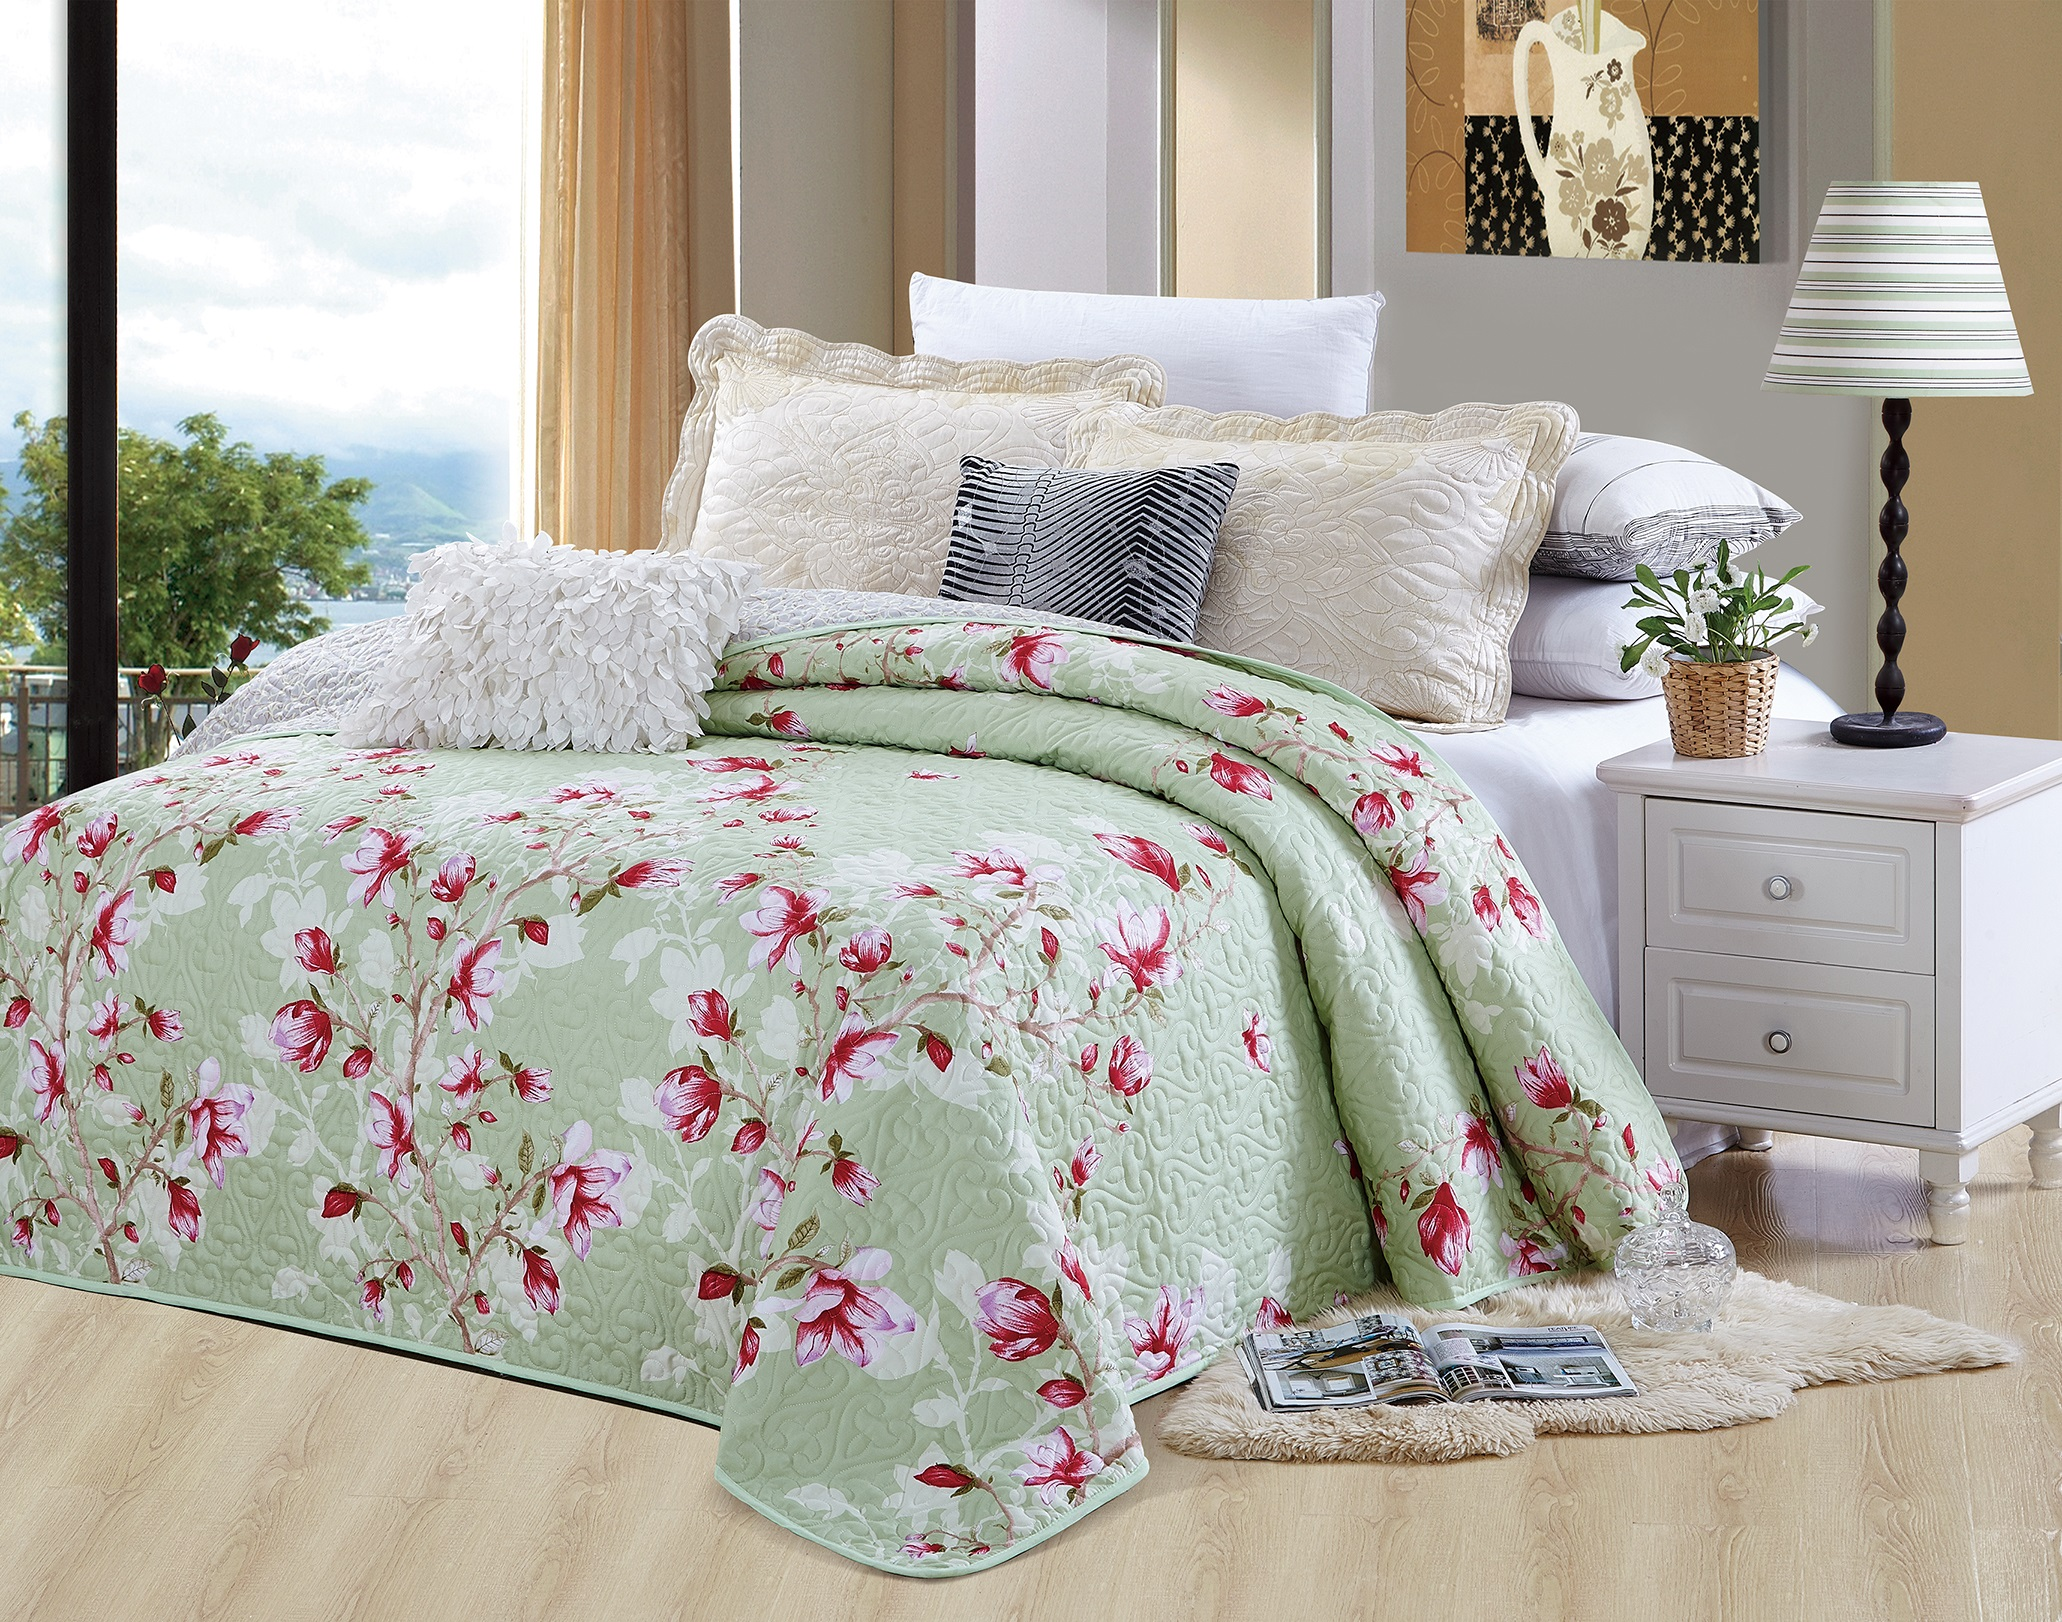 1PCS Fashion Bedspread Cotton Bed Cover Printed 160*240 220*240 260*240